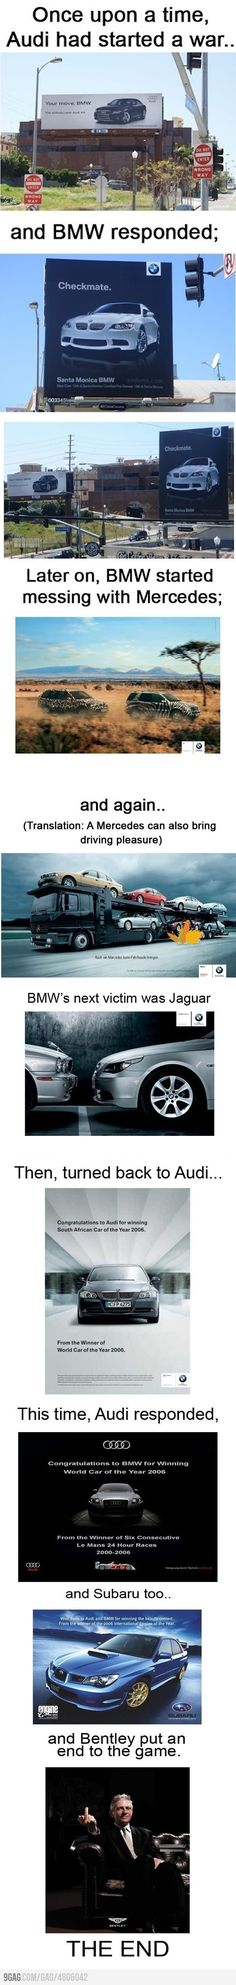 Audi vs BMW. One of the greatest battles in advertising history. What a bunch of legends